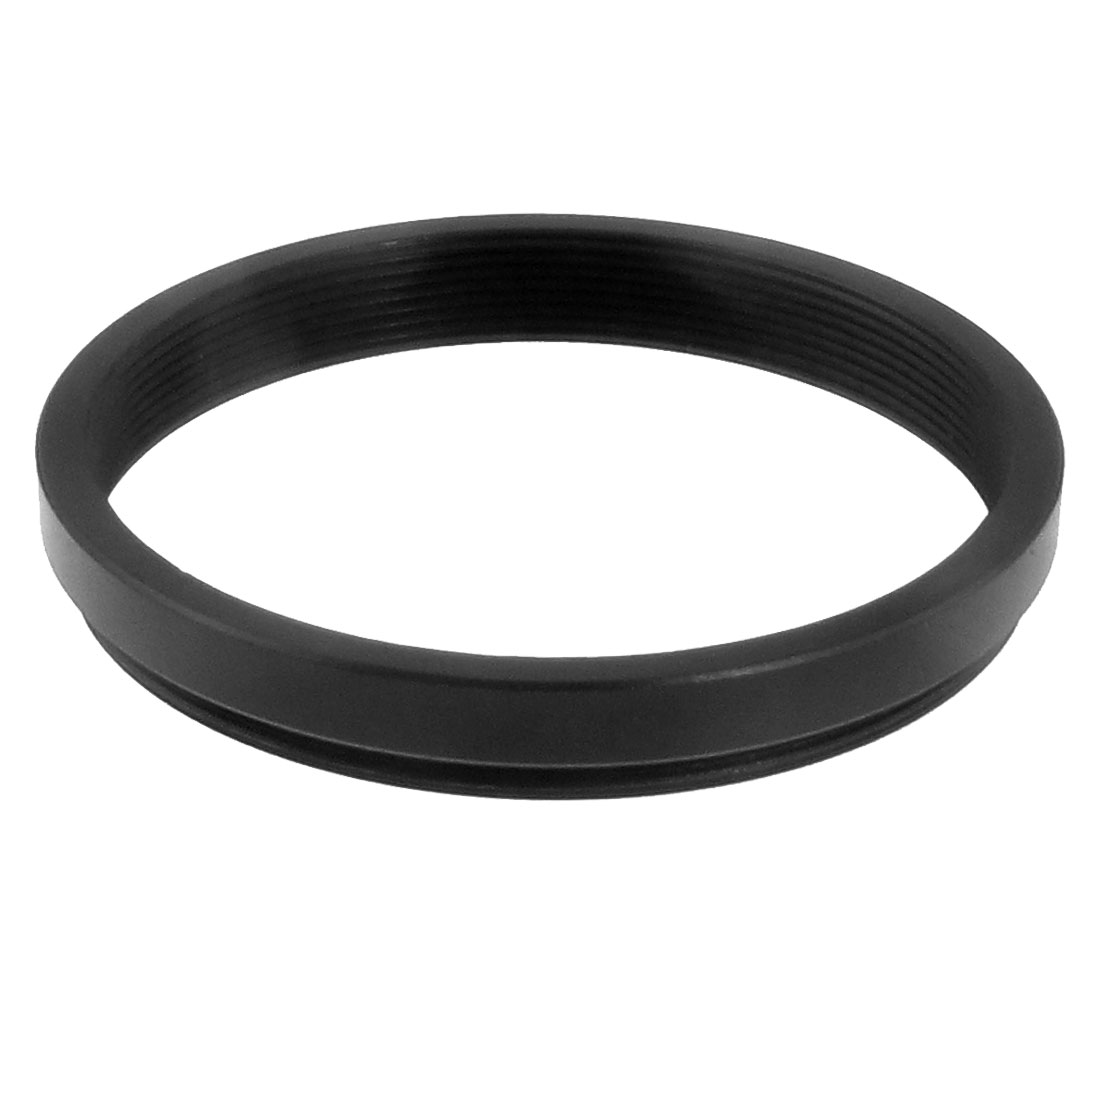 46mm-43mm-46mm-to-43mm-Black-Step-Down-Ring-Adapter-for-Camera